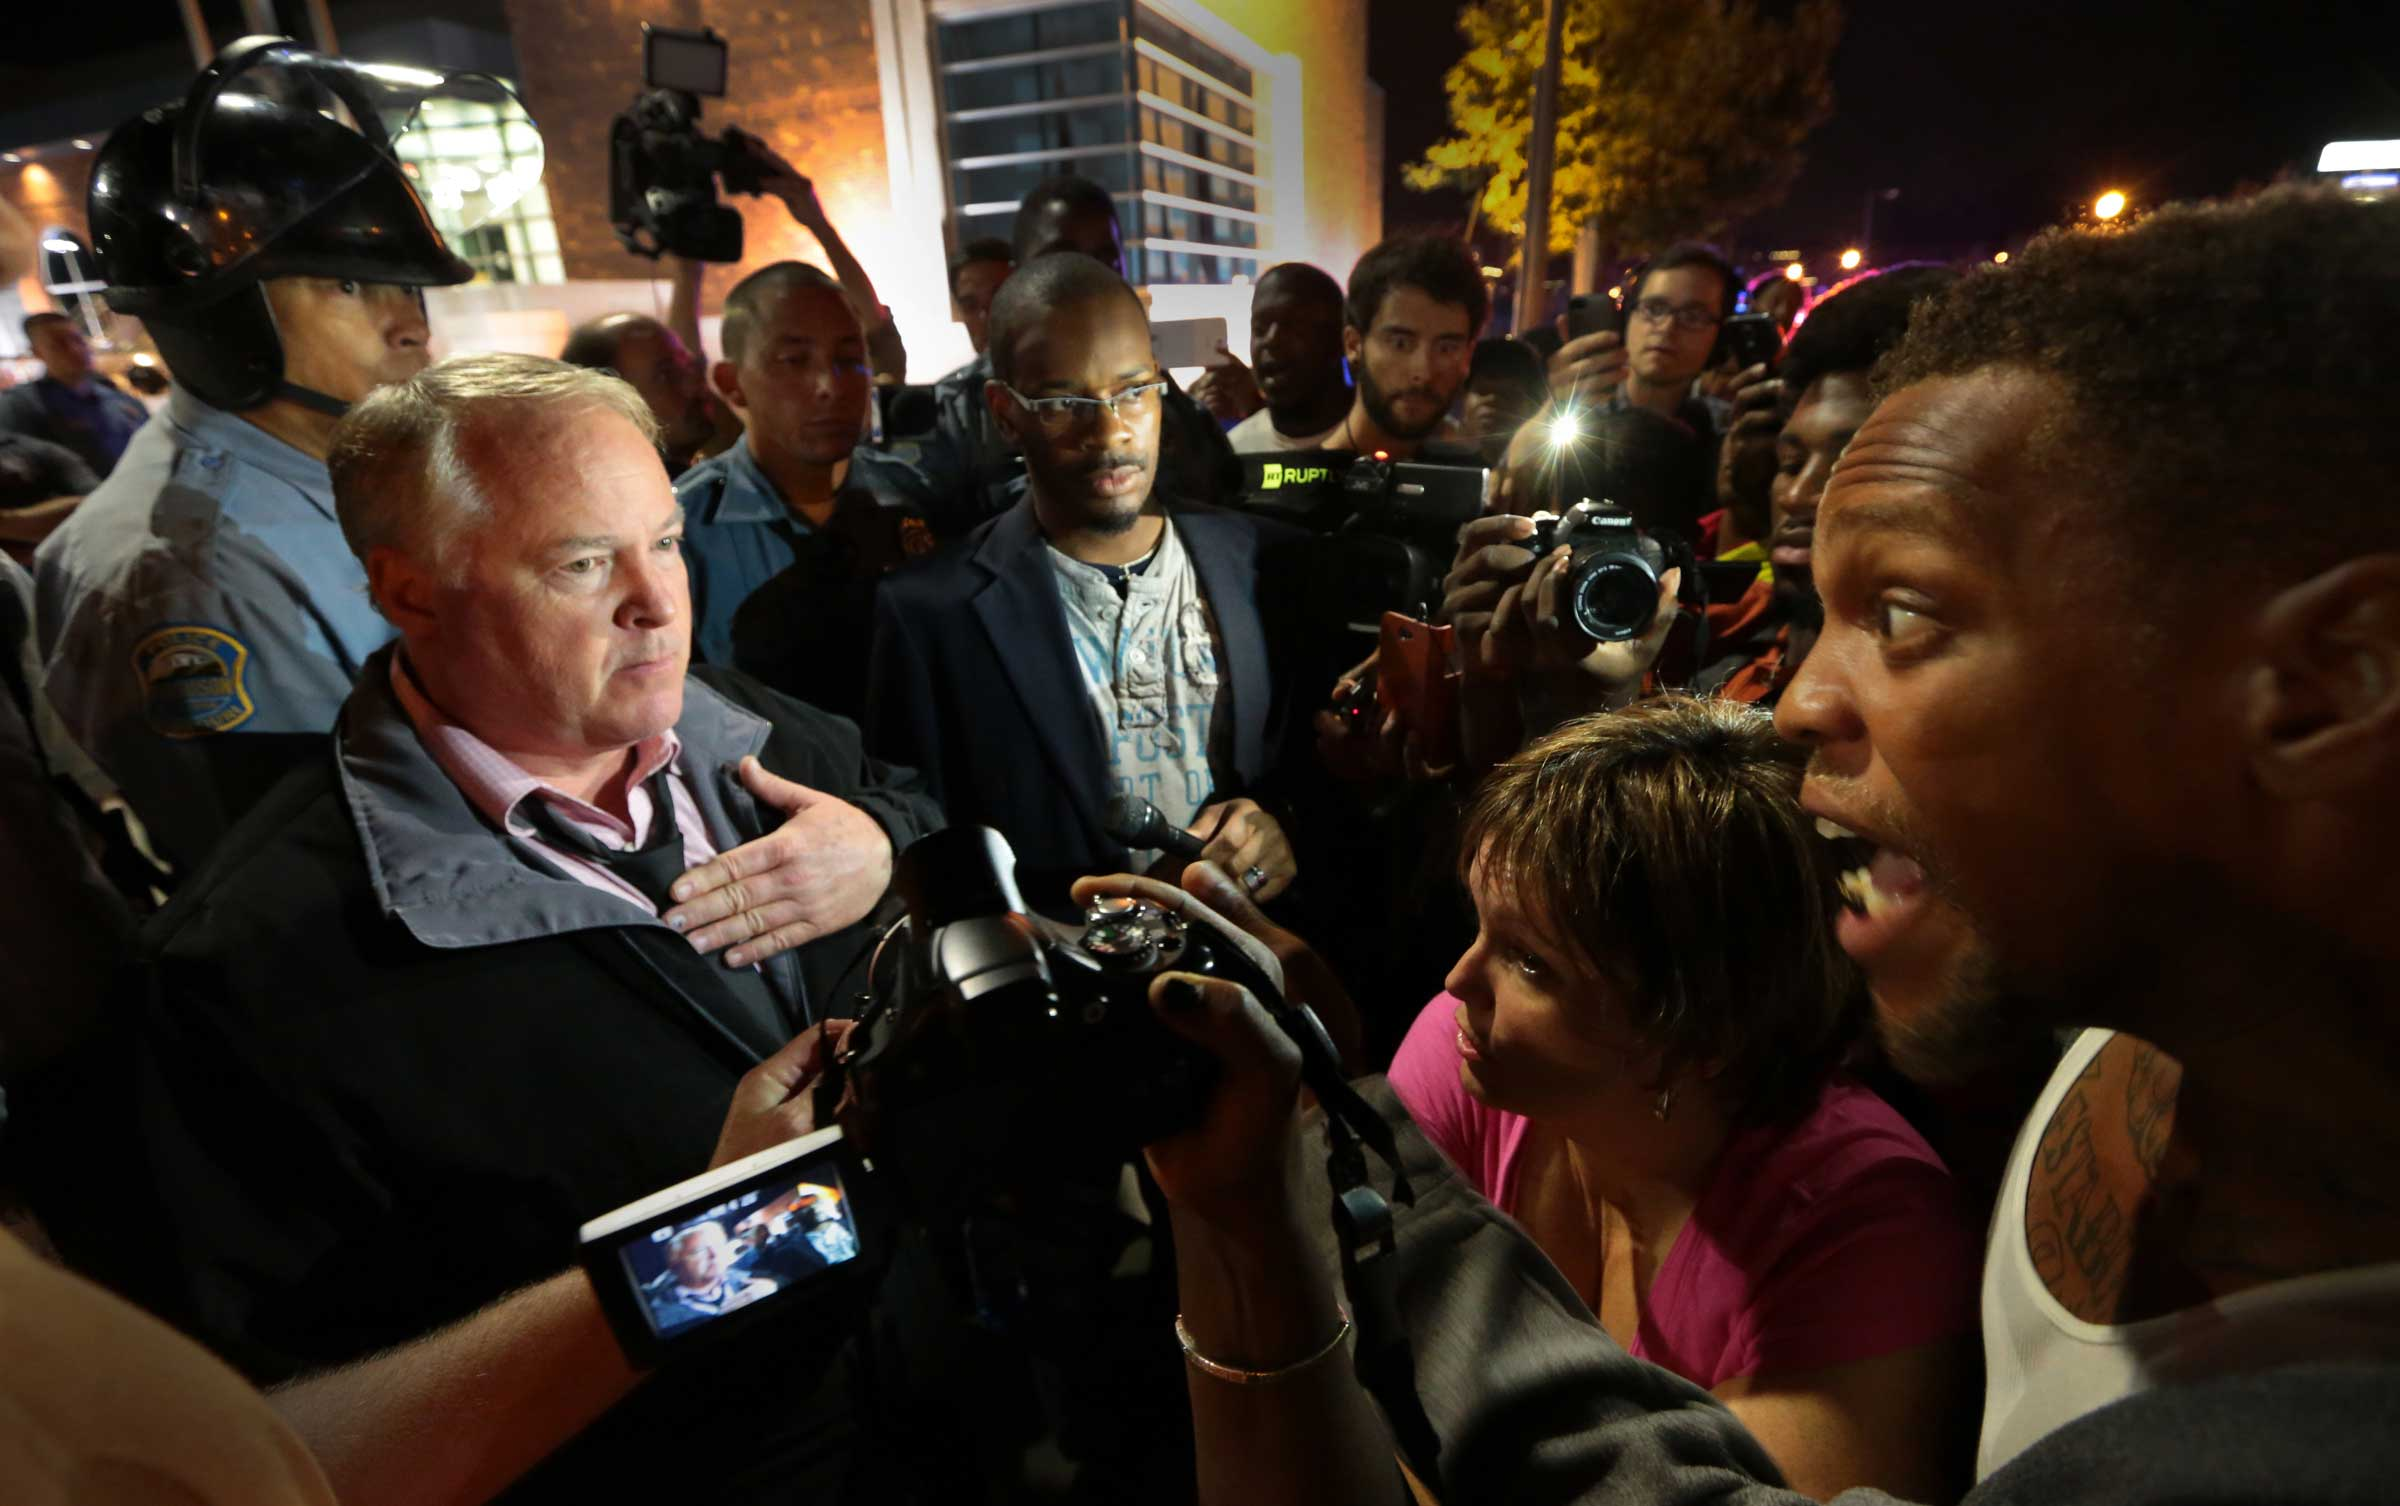 Ferguson Police Chief Tom Jackson, left, addresses protesters in front of the Ferguson Police Department, on Sept. 25, 2014. Protesters have called for Jackson to resign.